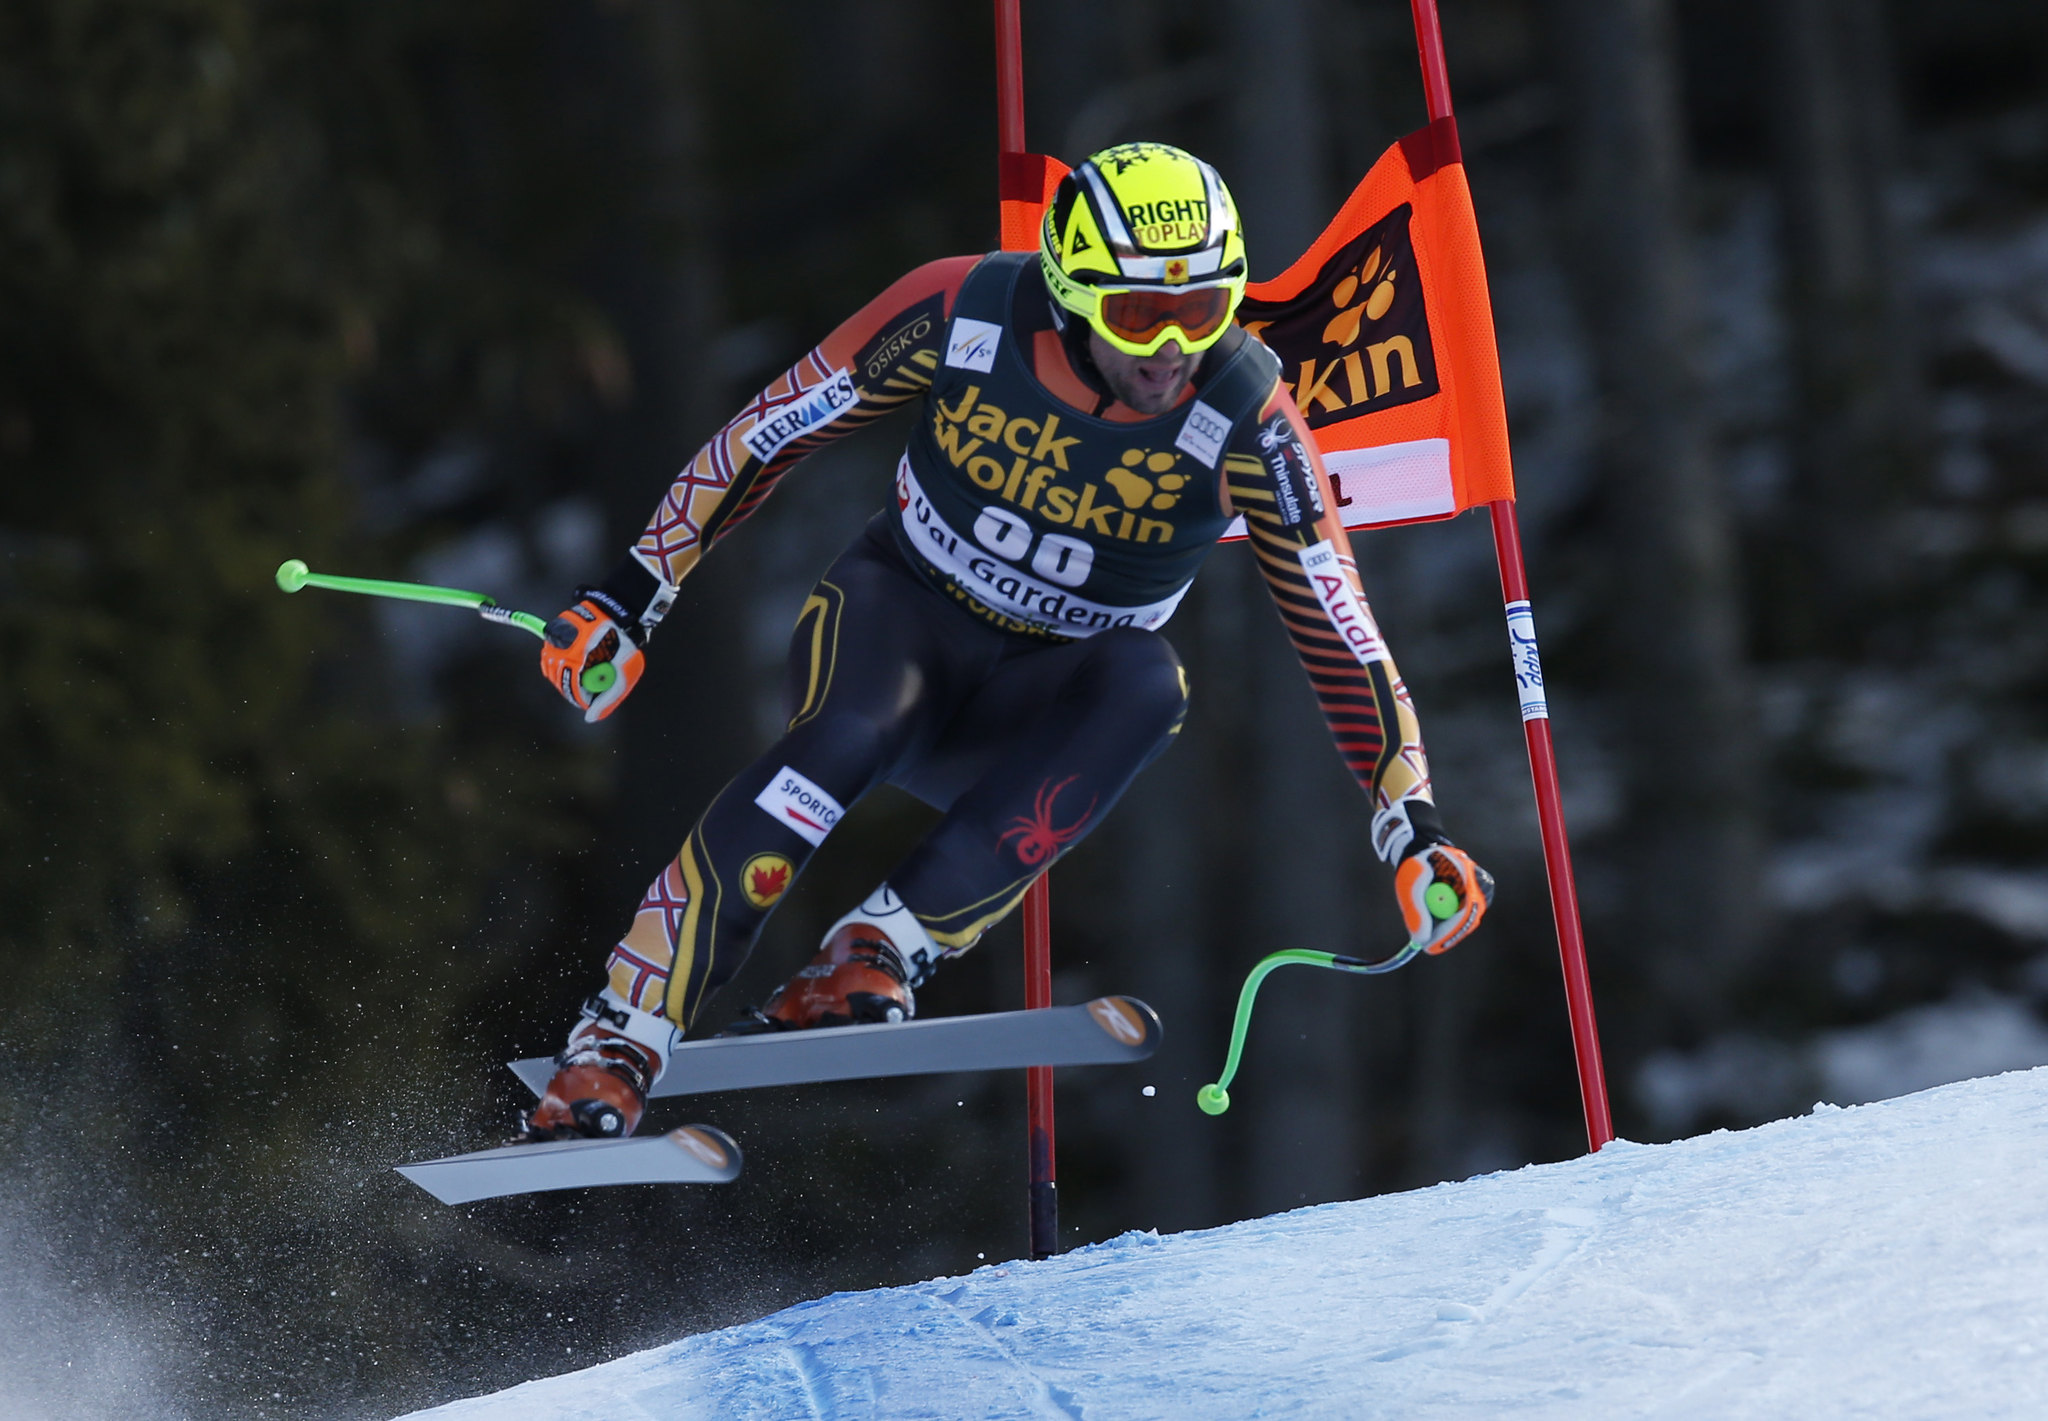 Manuel Osborne-Paradis flies around a gate during the downhill in ValGardena, ITA